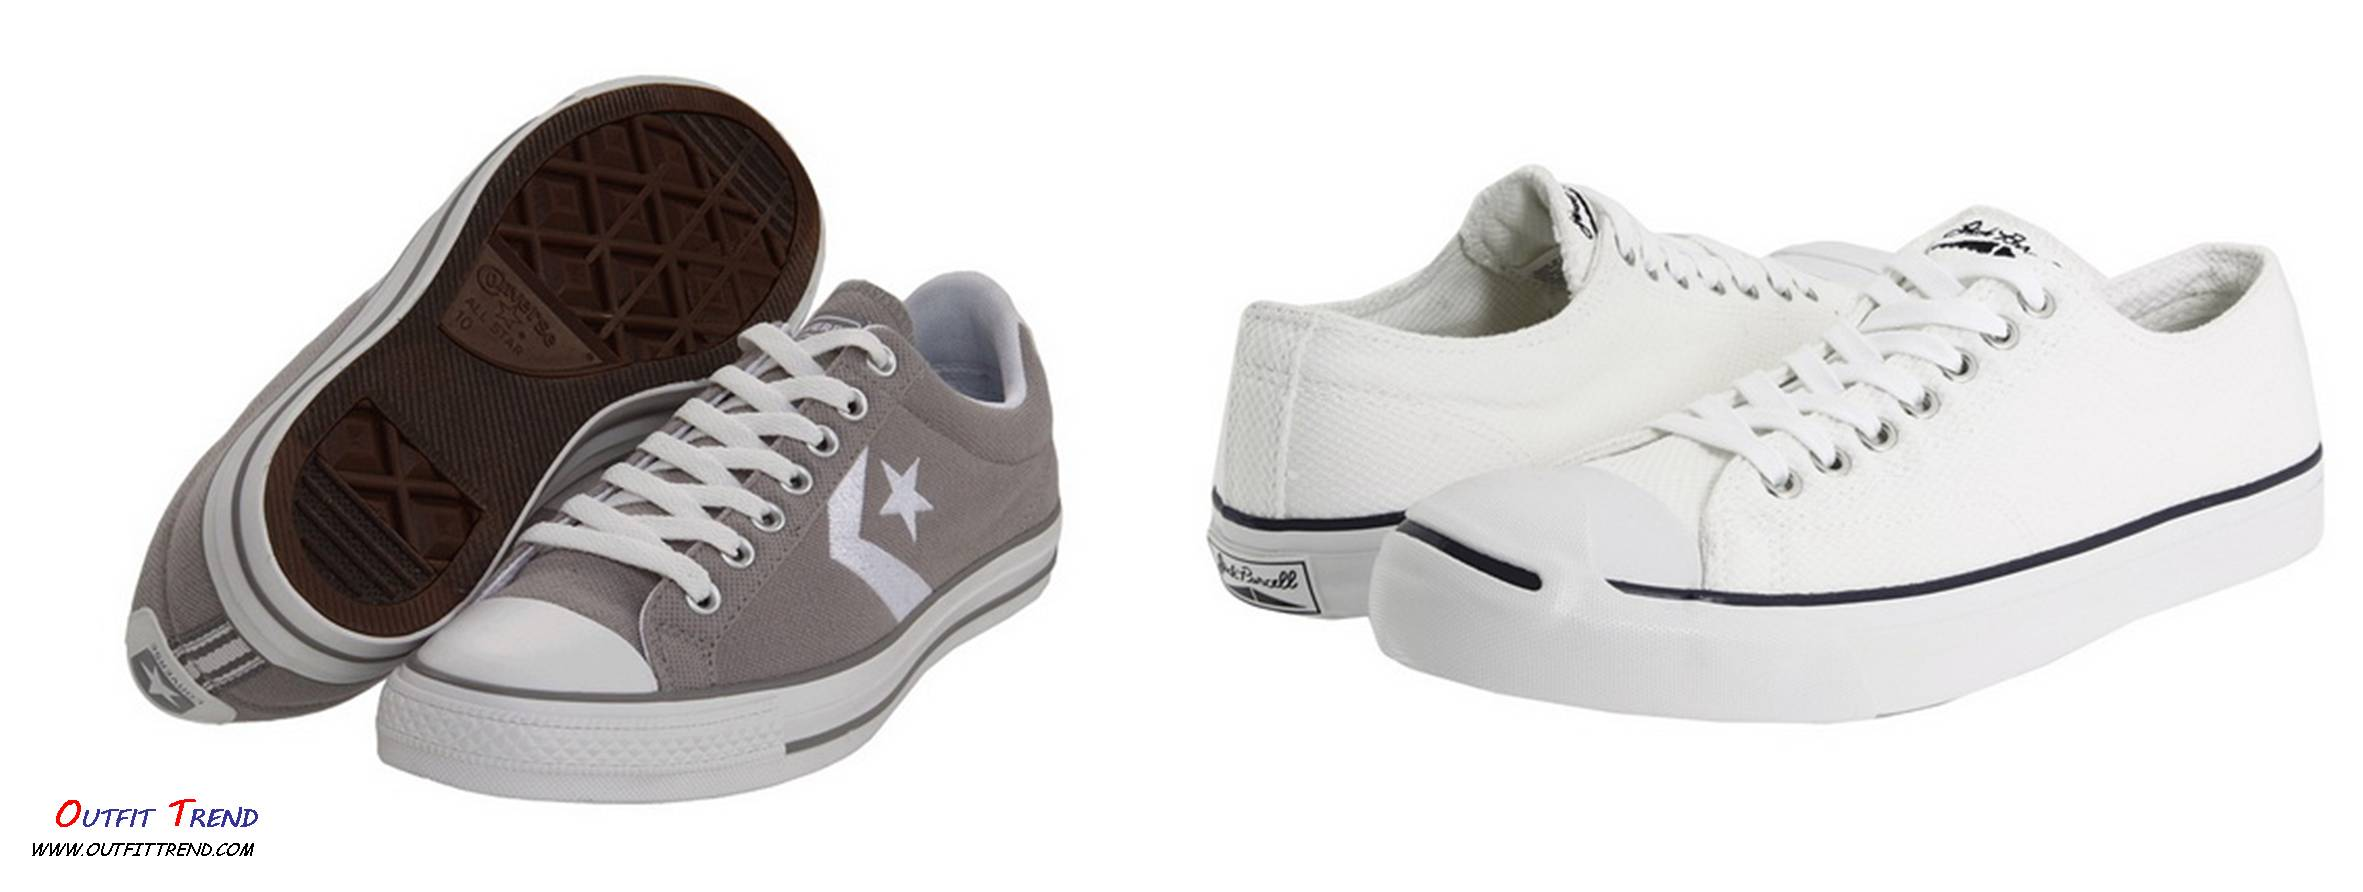 White-Converse-Sneakers Trendy Converse Chuck Taylor All Stars For Men Collection